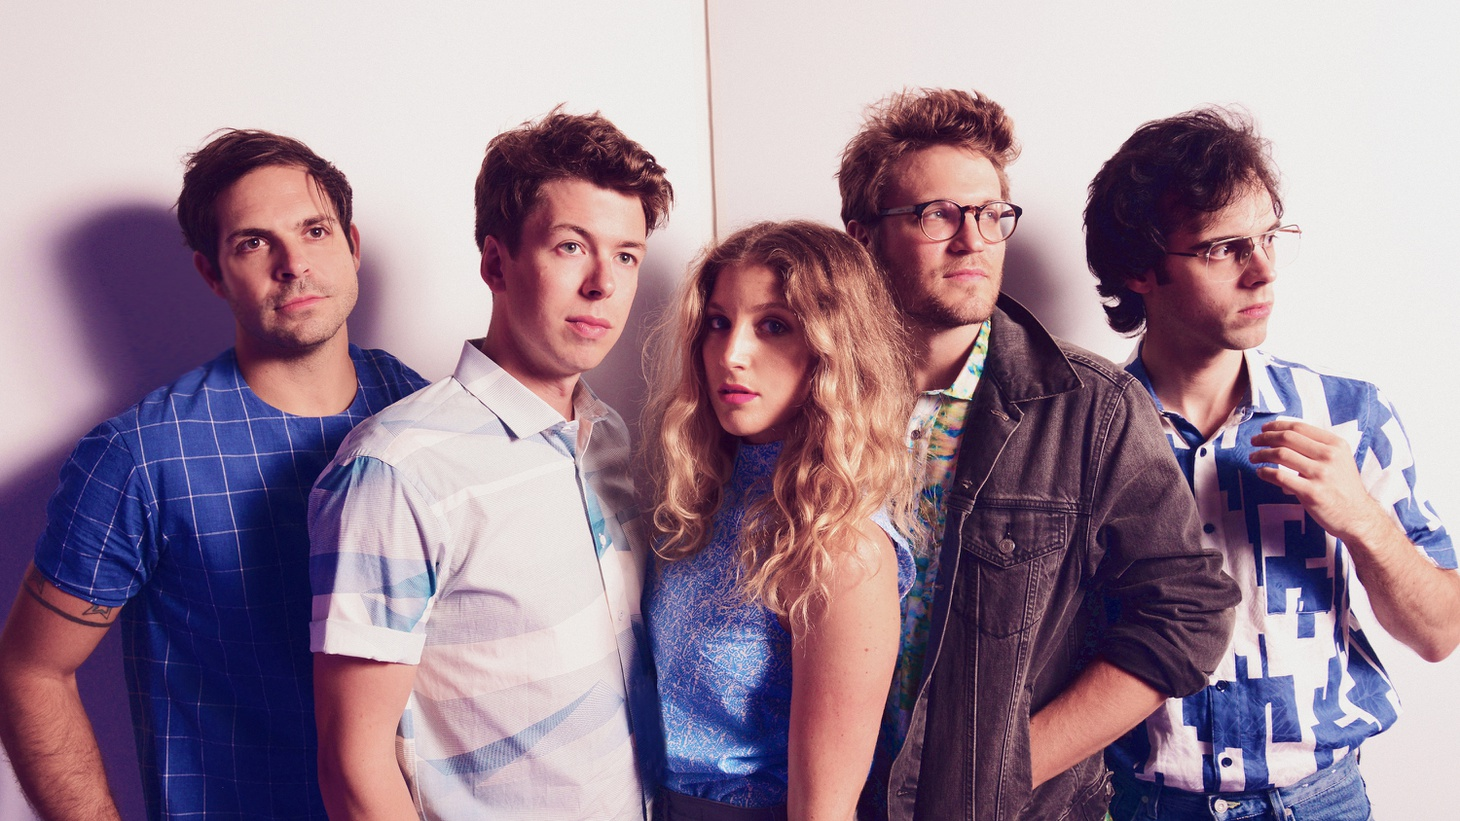 Syracuse's Ra Ra Riot burst onto the indie music scene nearly 10 years ago with an orchestral pop sound.